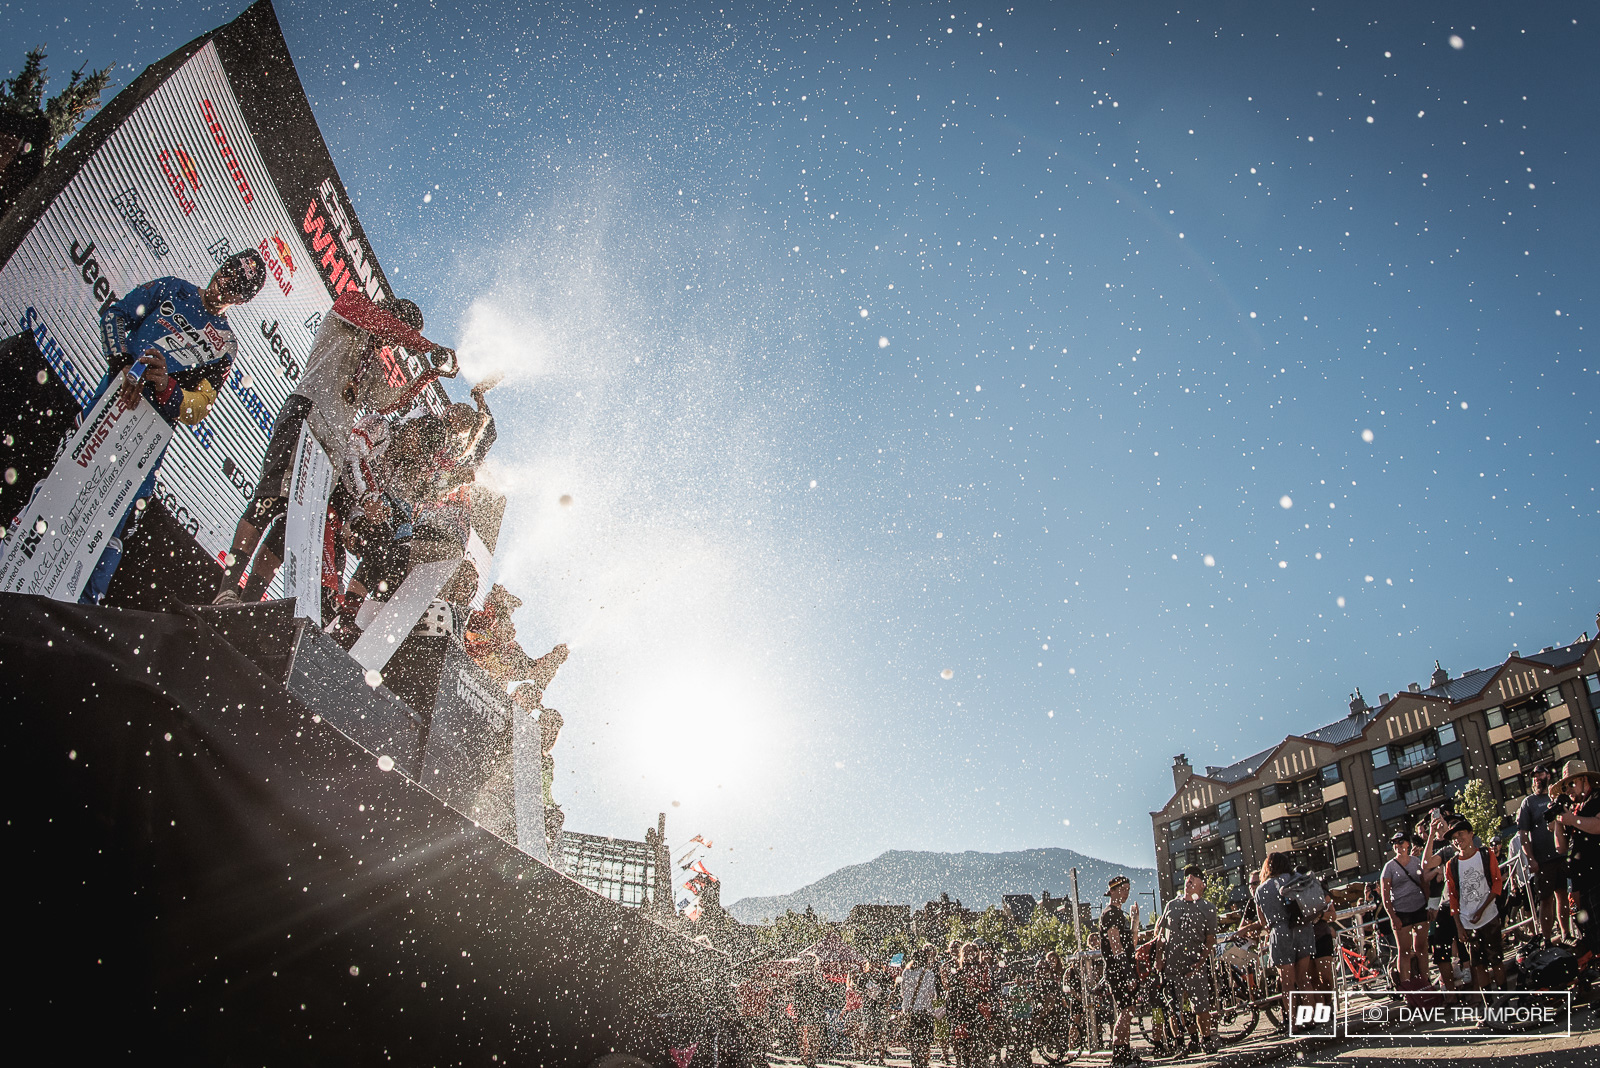 The only moisture Whistler has seen this week has been champagne raining down from the podium.